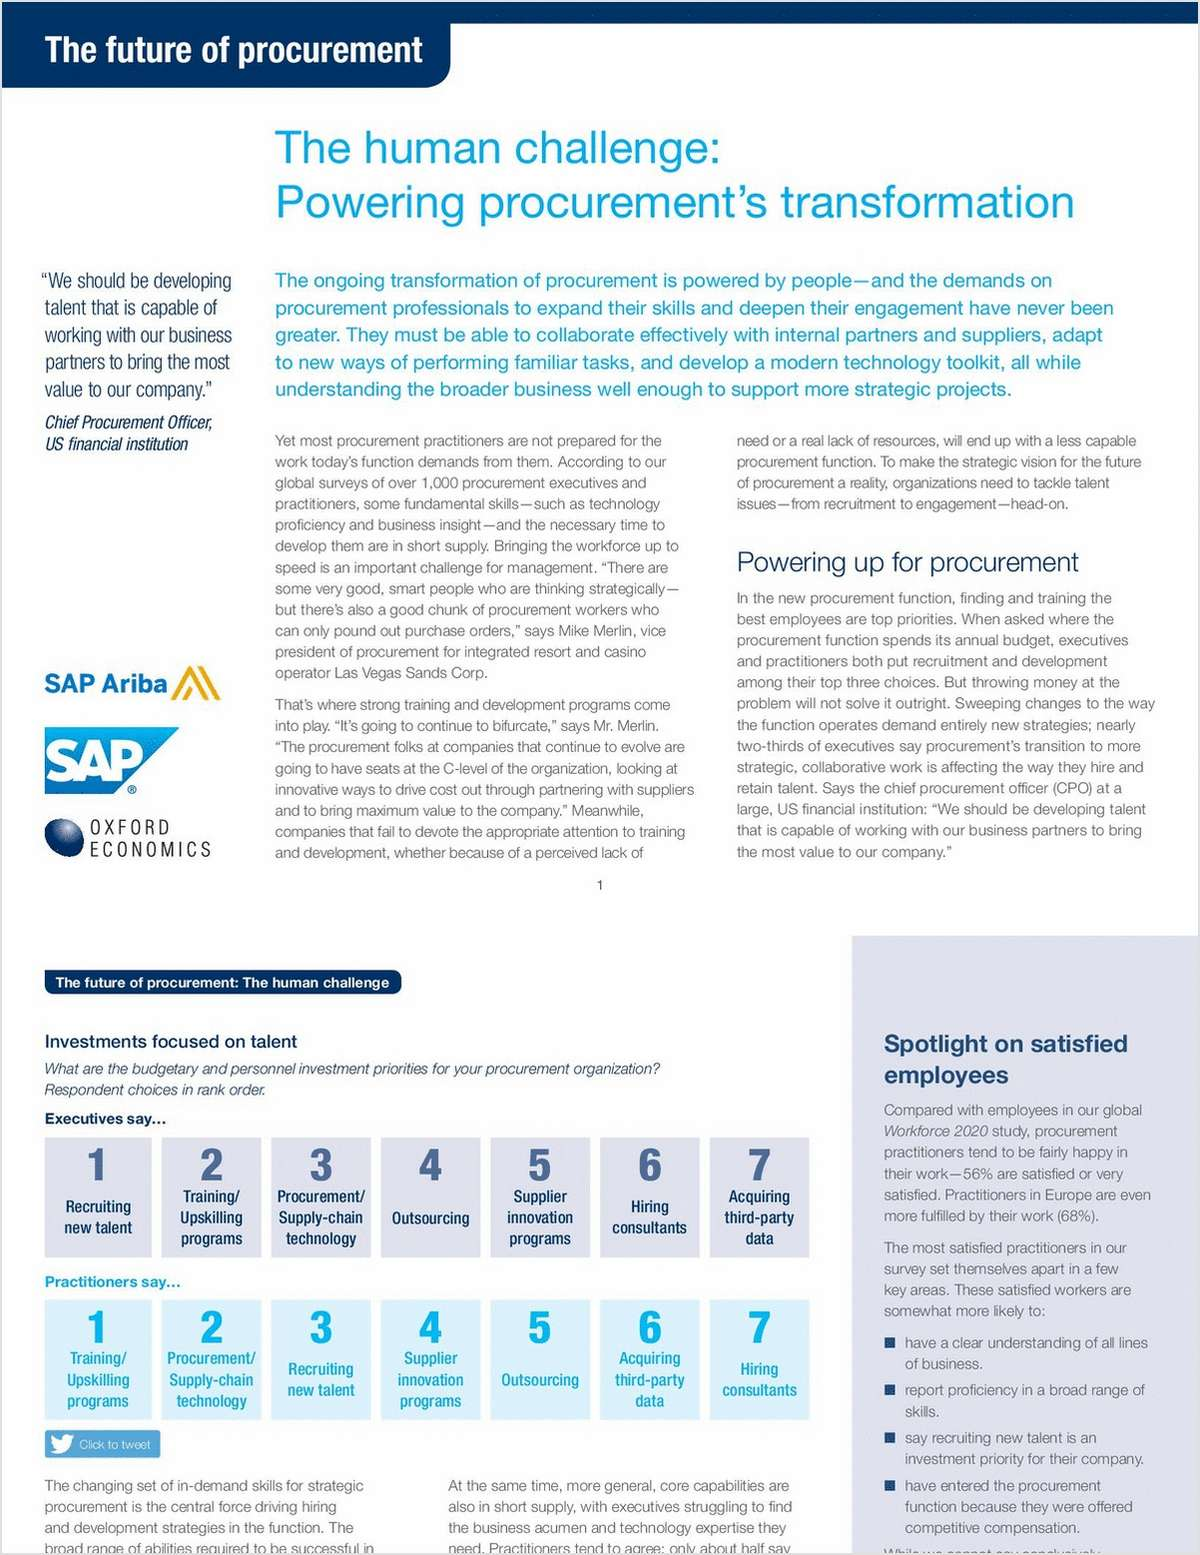 The Future of Procurement: The Human Challenge